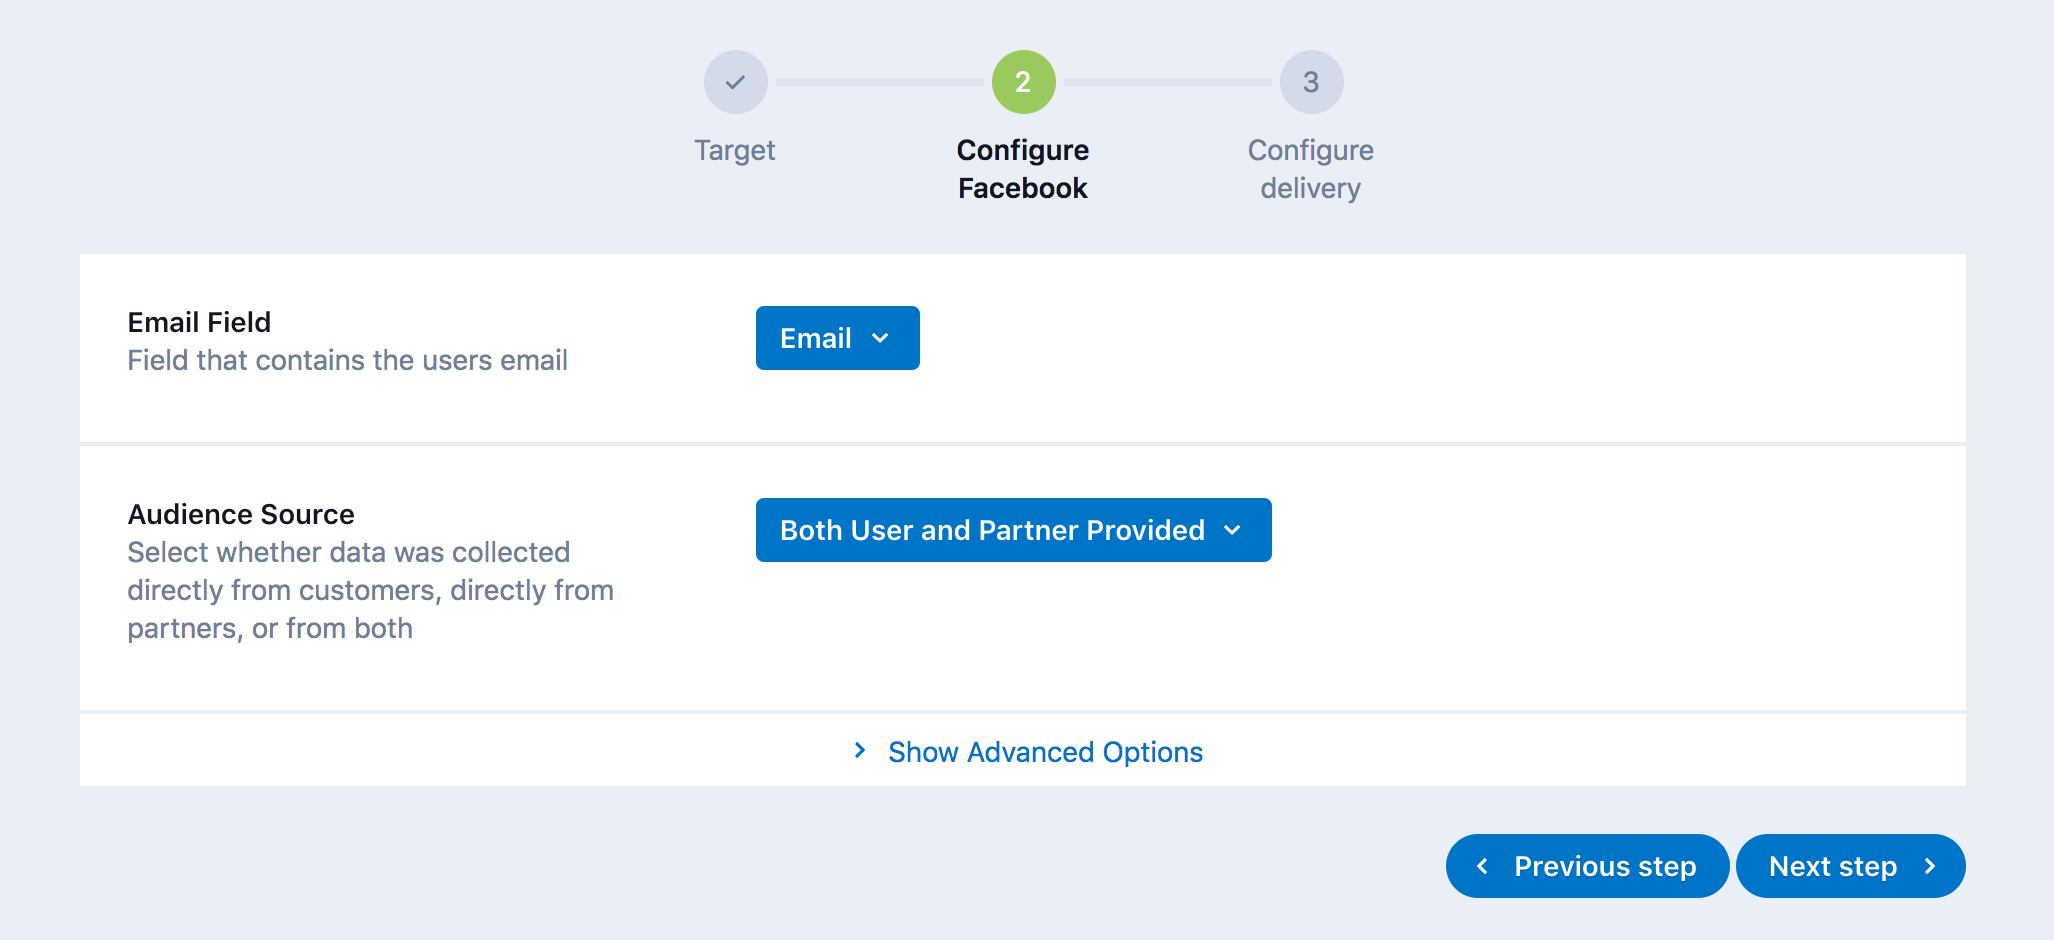 configure facebook step